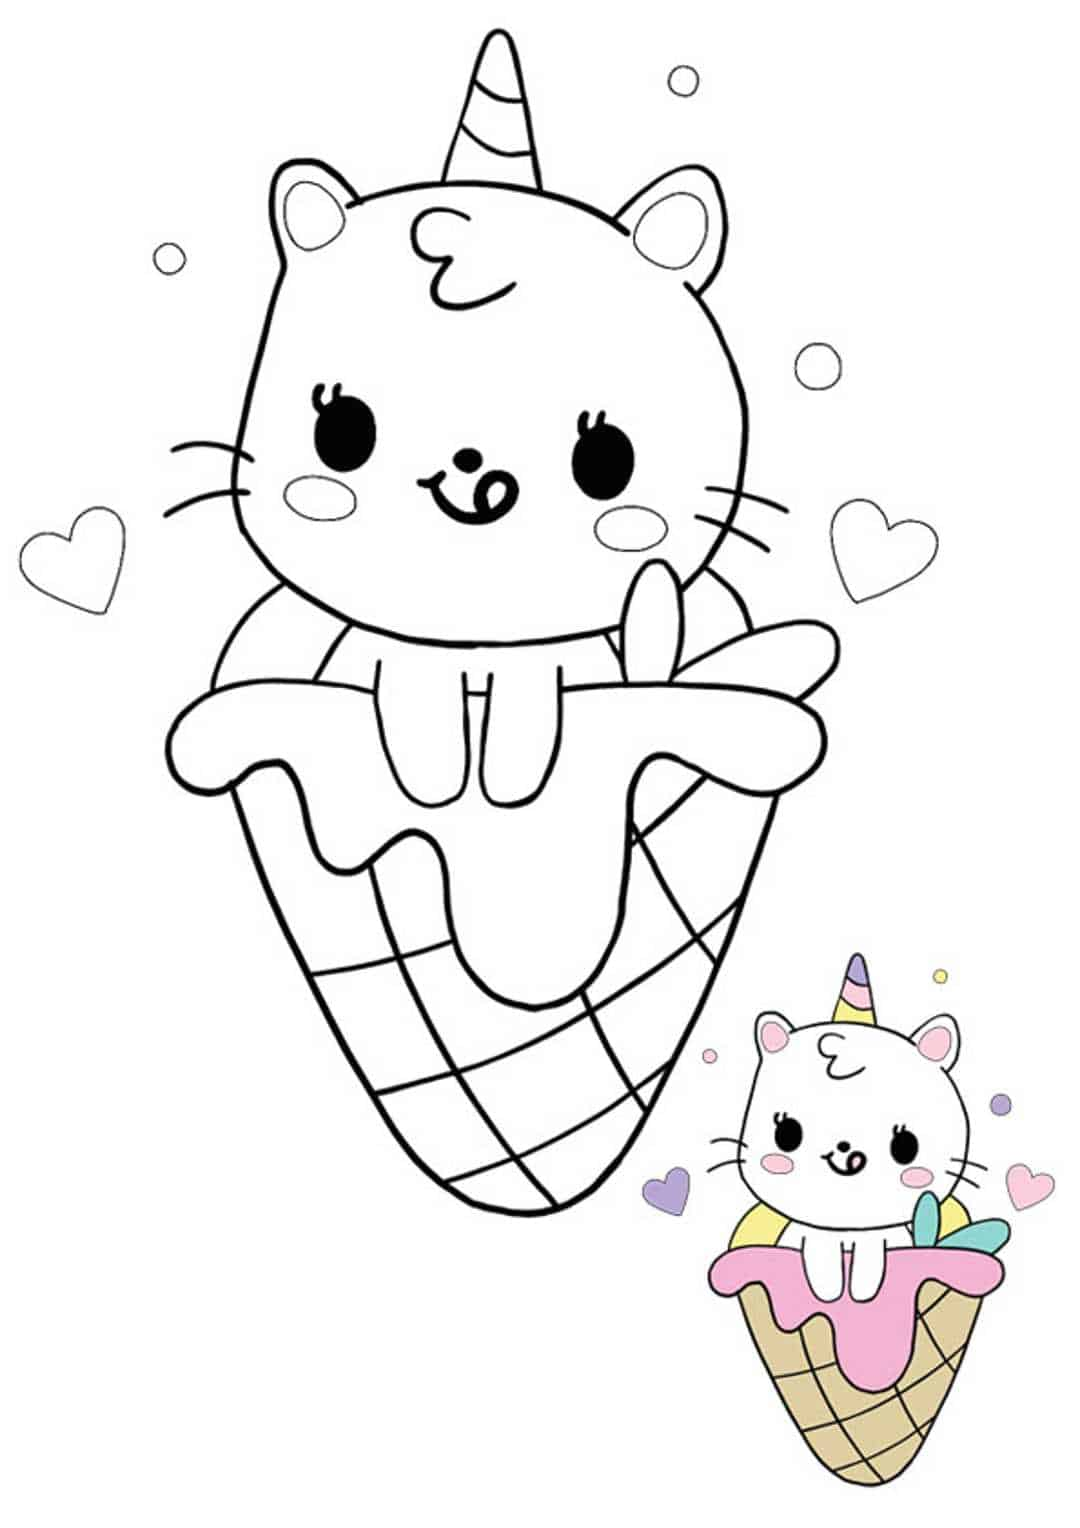 Cute kawaii unicorn cat mermaid ice cream coloring page with sample